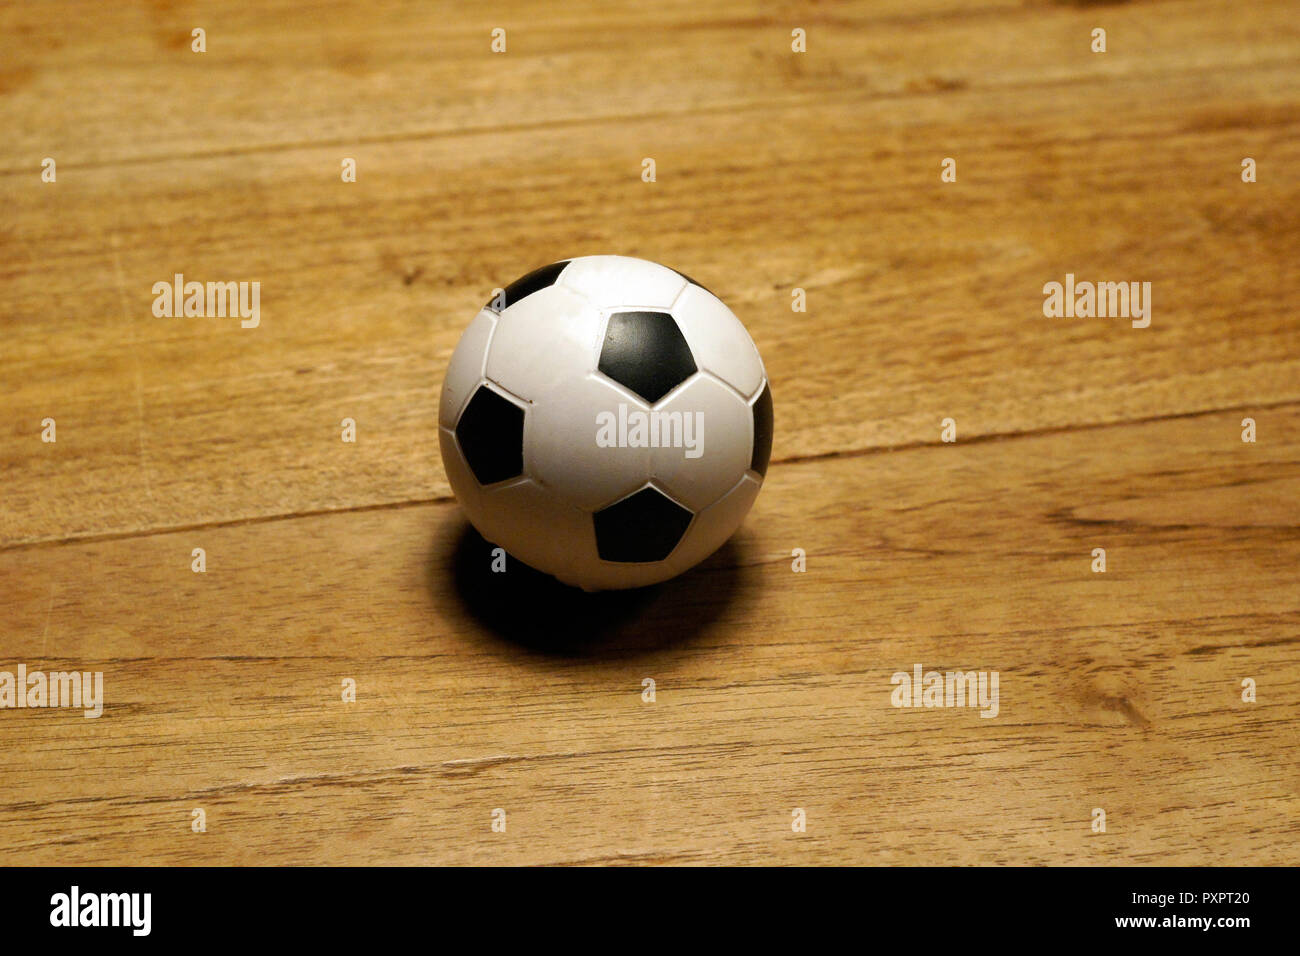 white and black mini football at wooden table - Stock Image